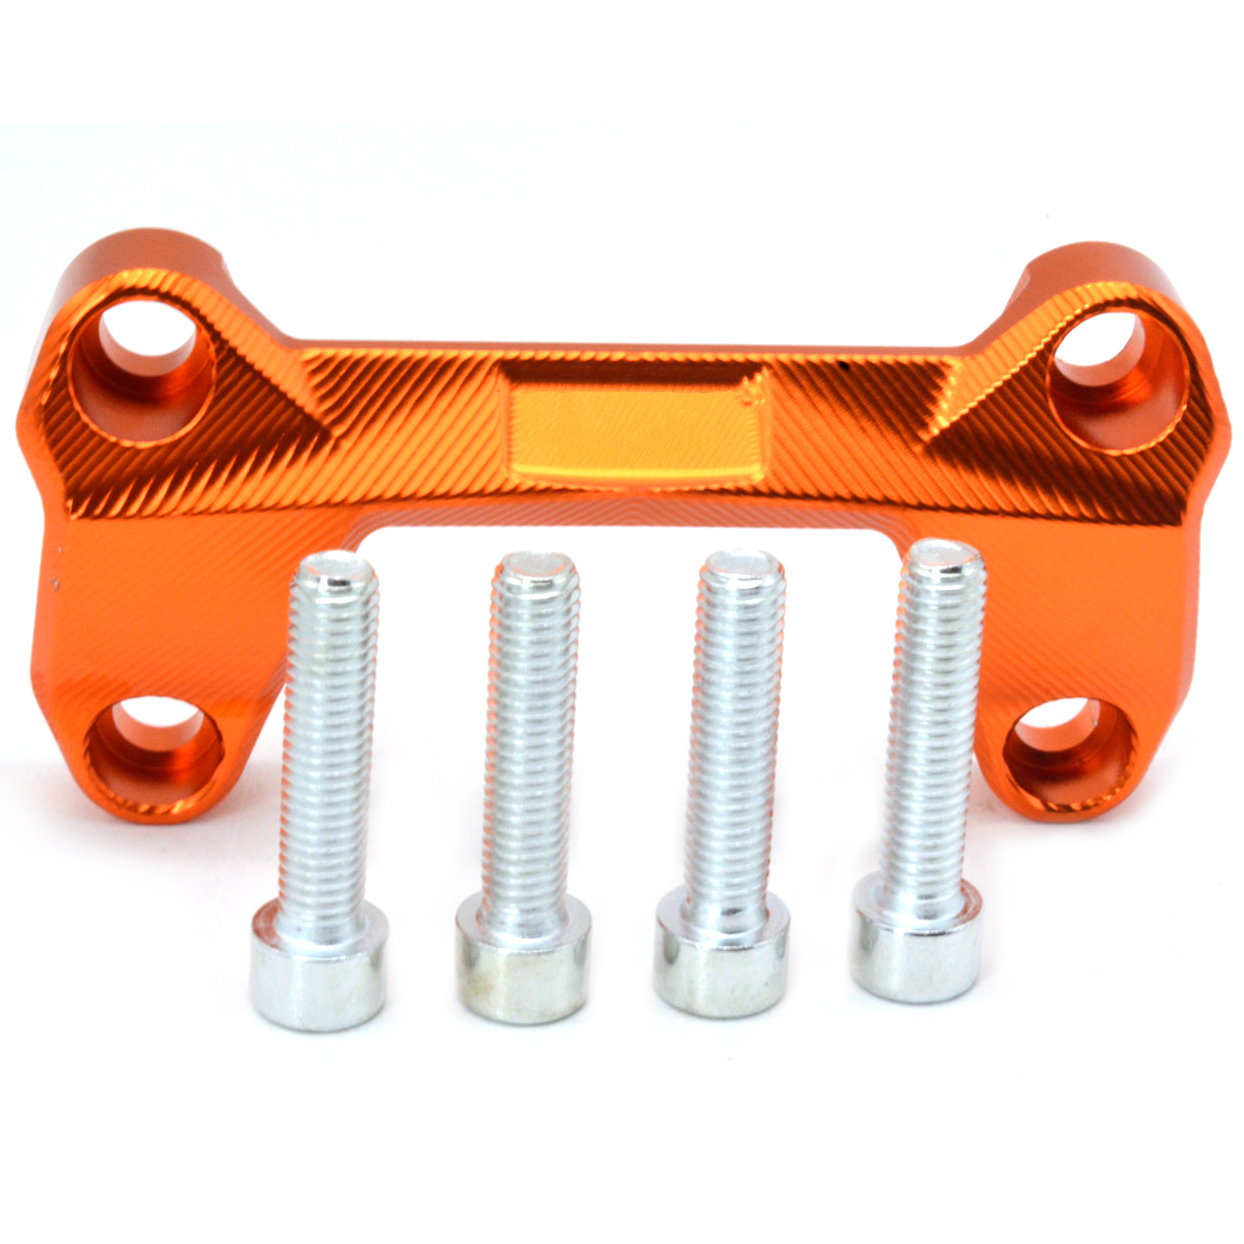 Motorcycle Handlebar Riser Handle Bar Riser Clamp For CNC Aluminum Accessories Orange Black For KTM Duke 125 200 300